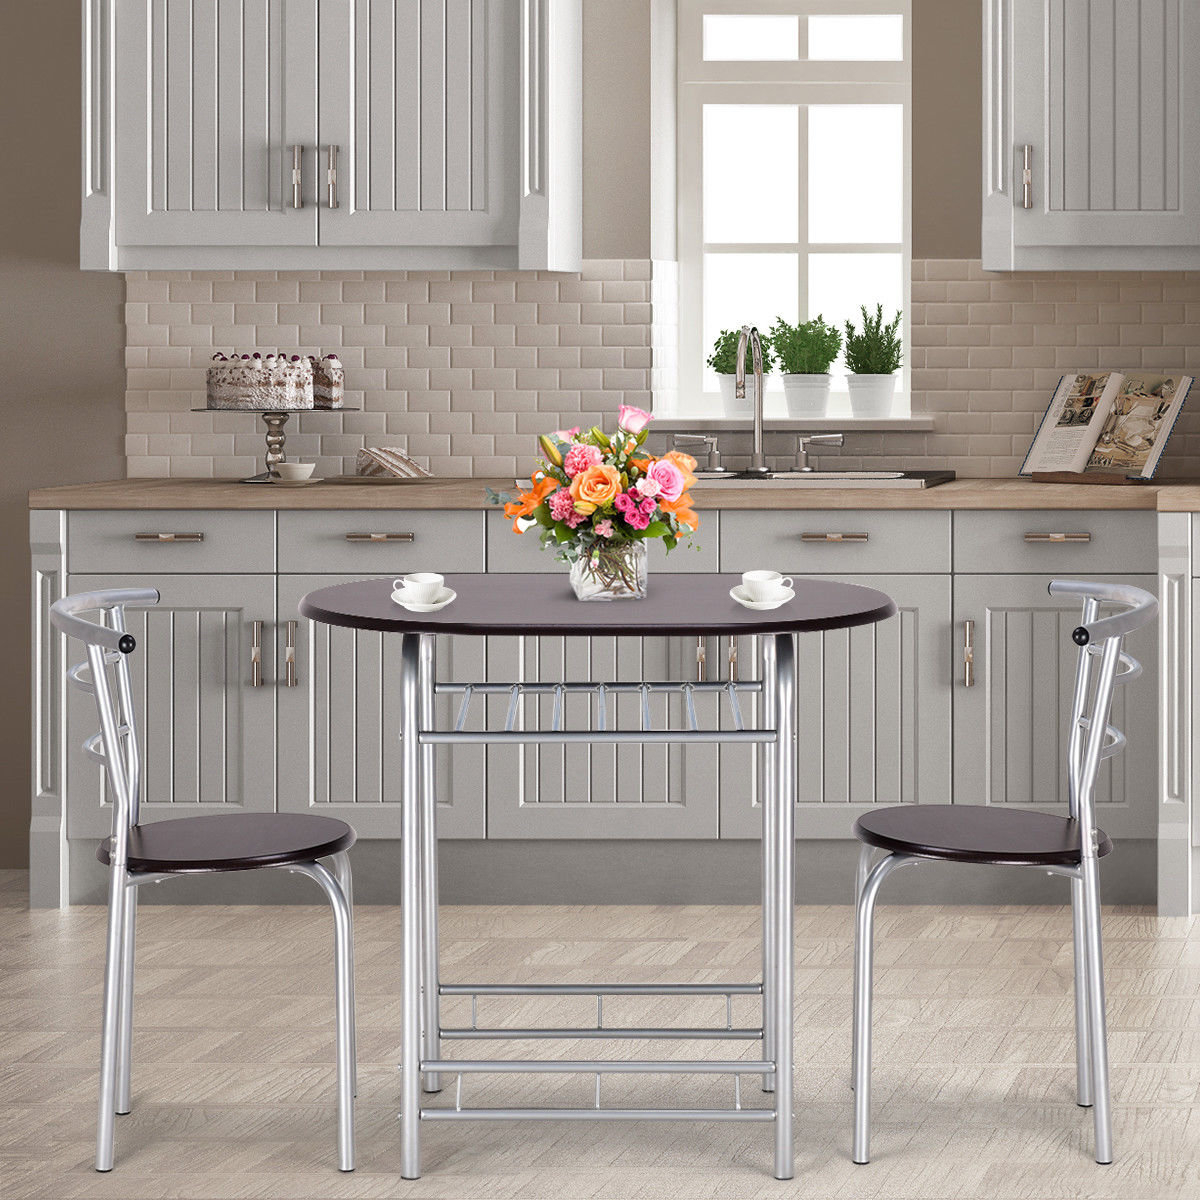 Most Up To Date Details About Ebern Designs Lelia 3 Piece Breakfast Nook Dining Set Within Lillard 3 Piece Breakfast Nook Dining Sets (View 5 of 20)